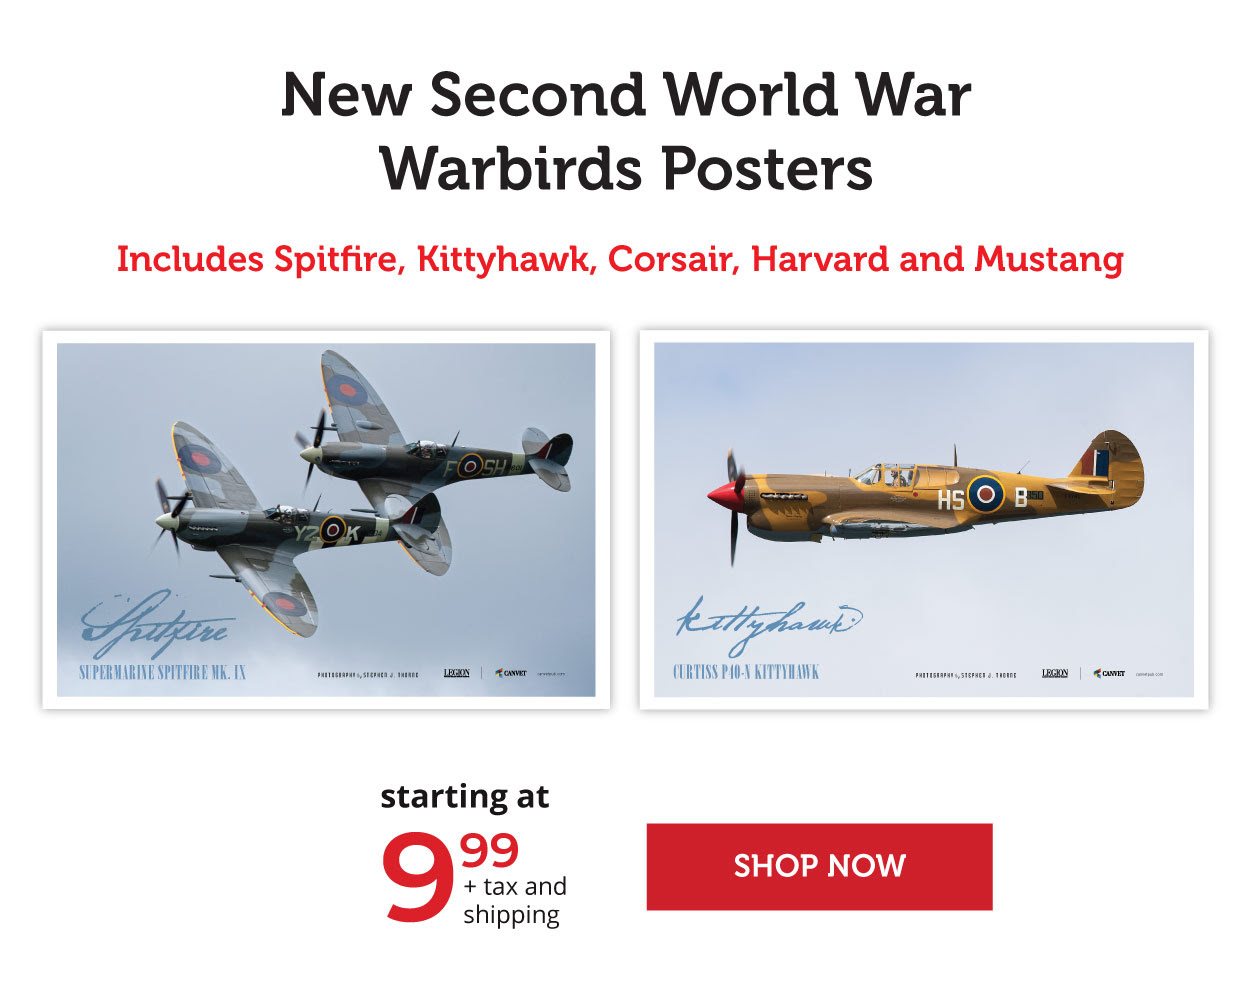 Commemorative Posters from the Second World War